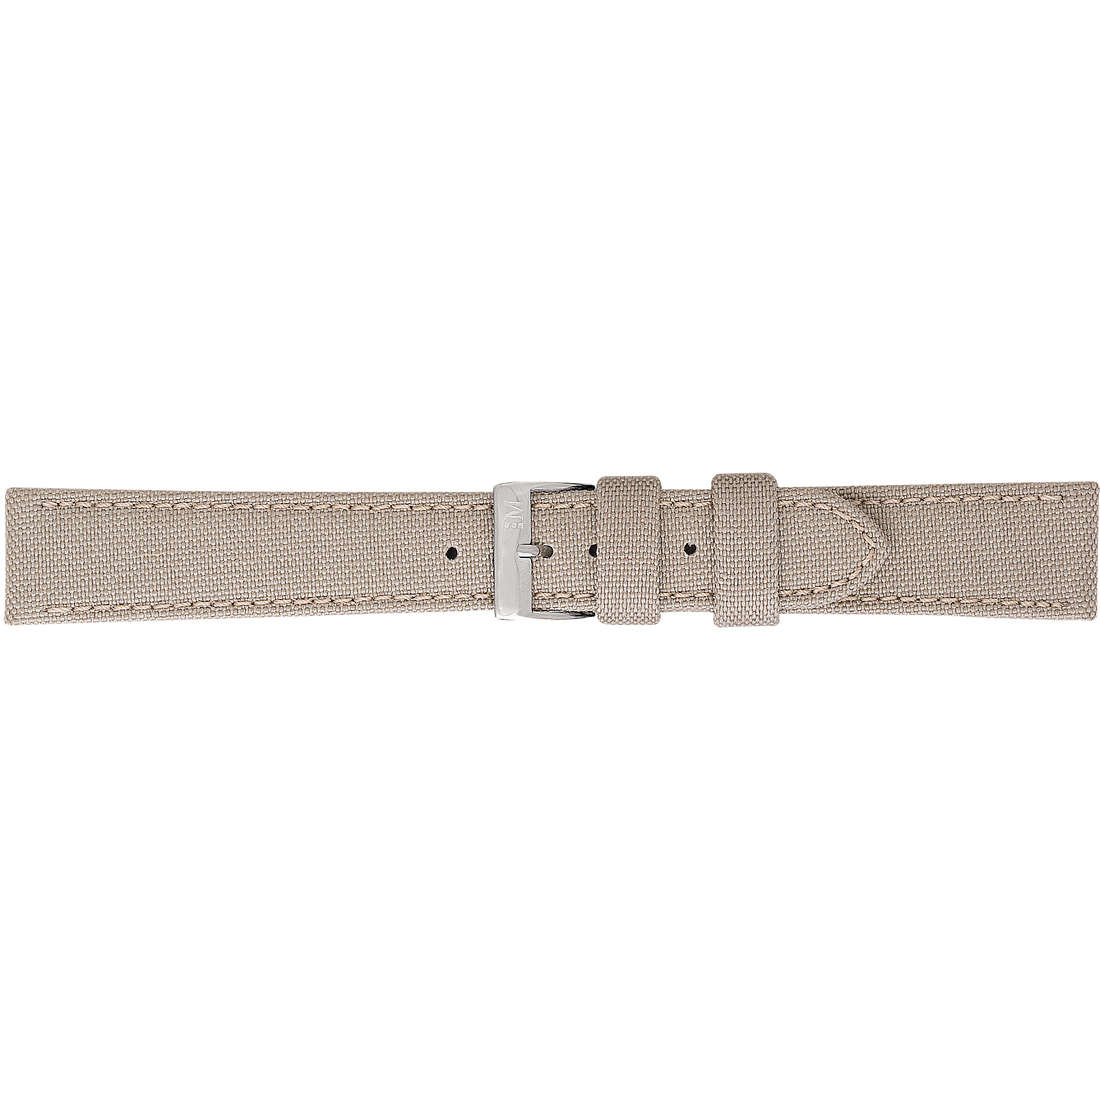 watch watch bands watch straps man Morellato Linea Sport A01U2779110026CR24